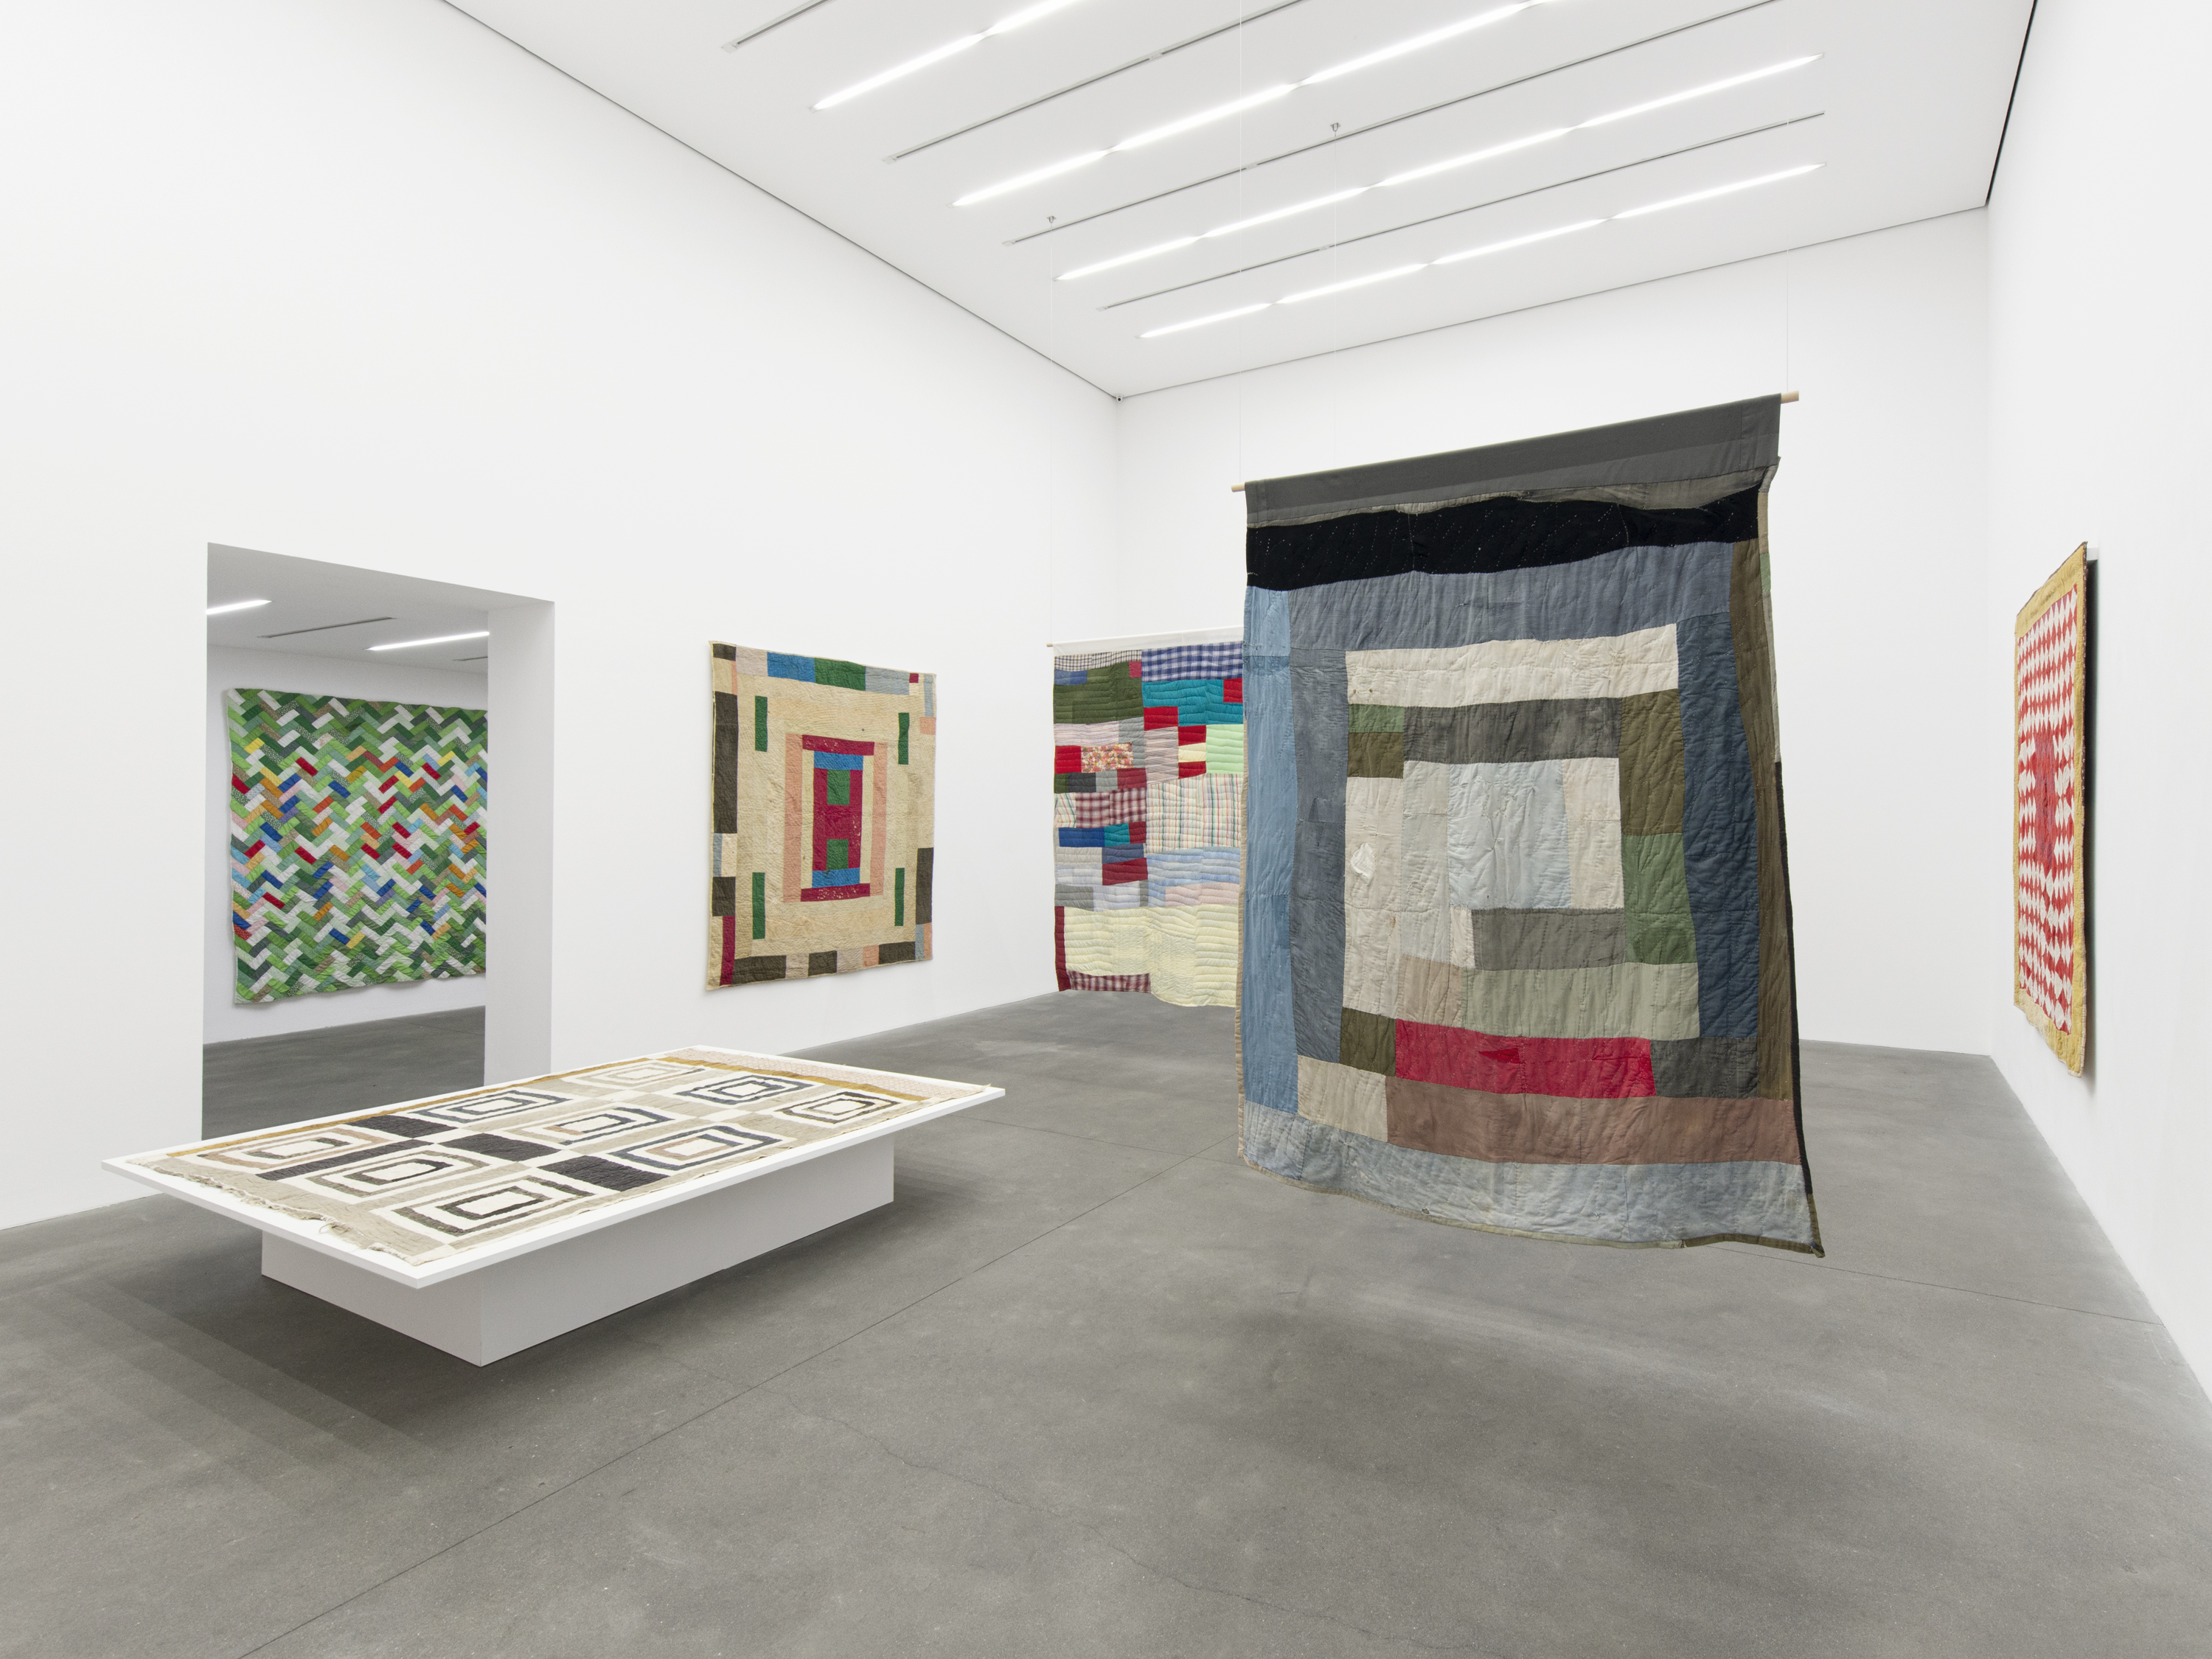 Installation View 5, THE GEE'S BEND QUILTMAKERS, Alison Jacques Gallery, 2021, All images courtesy of Alison Jacques Gallery